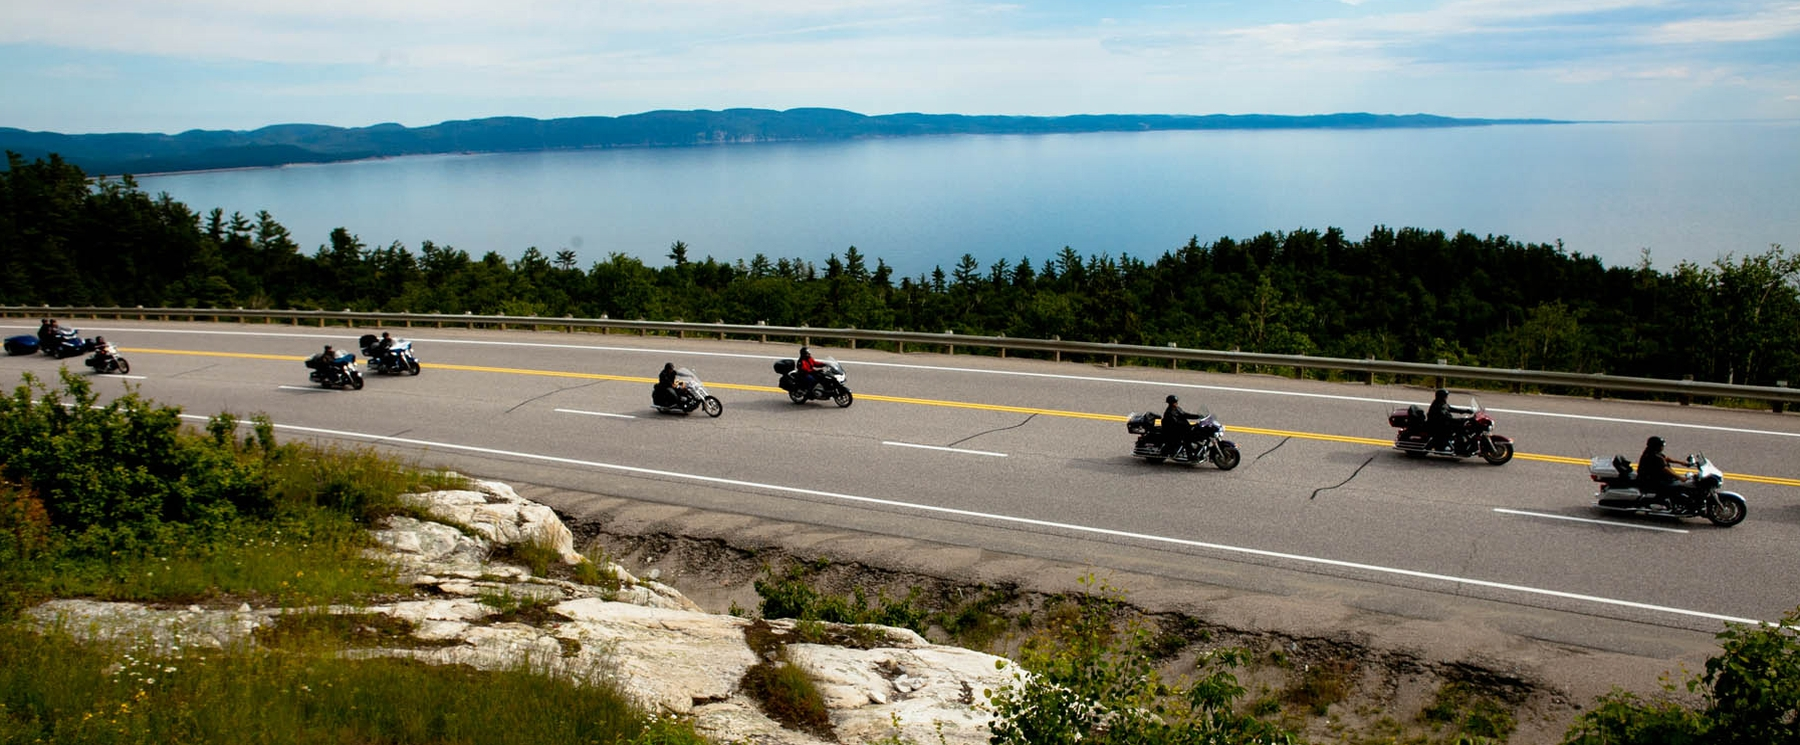 group of people on motorcycles on highway beside Lake Superior